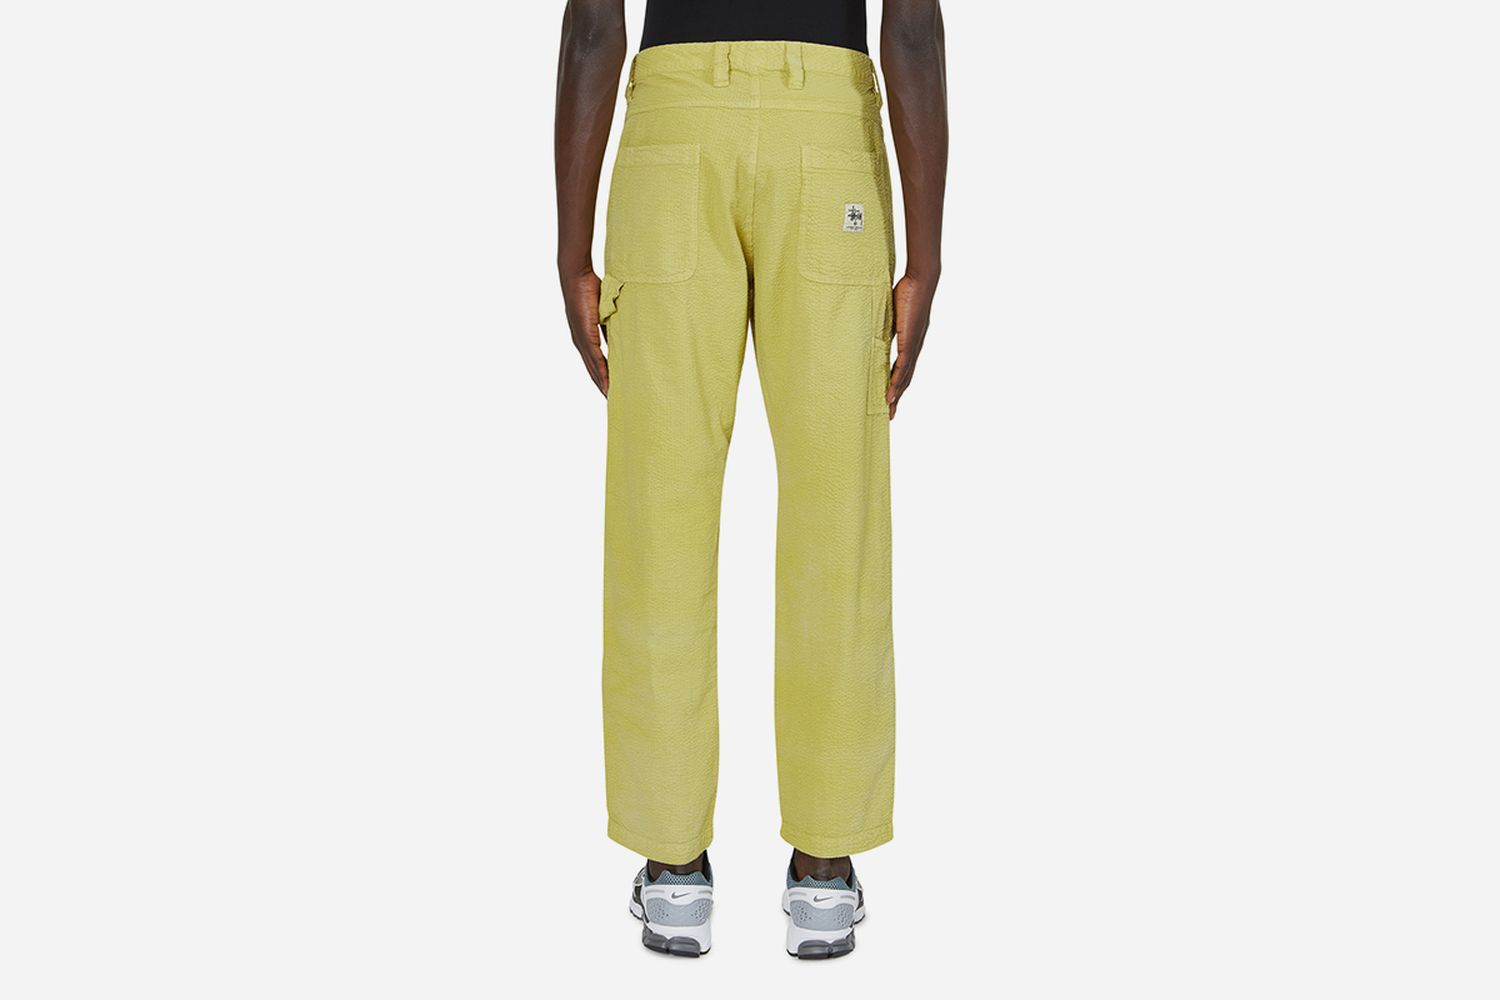 O'Dyed Seersucker Work Pants